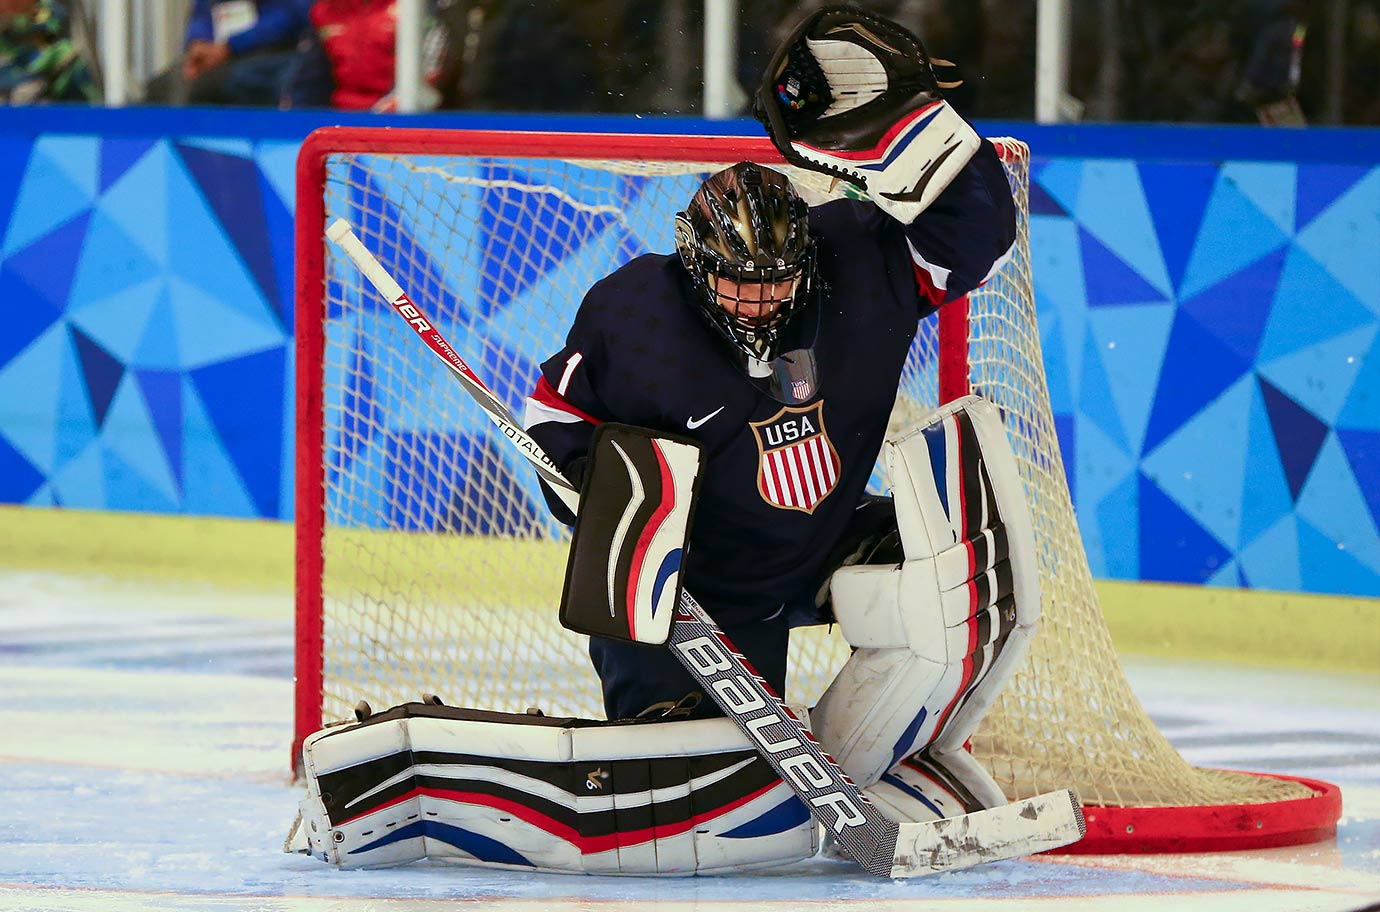 Drew DeRidder (USA) makes a save in the third period of the Men's Ice Hockey Preliminary Round Game between the USA and Russia at the Youth Hall on Feb. 18, 2016 during the Winter Youth Olympic Games in Lillehammer, Norway.